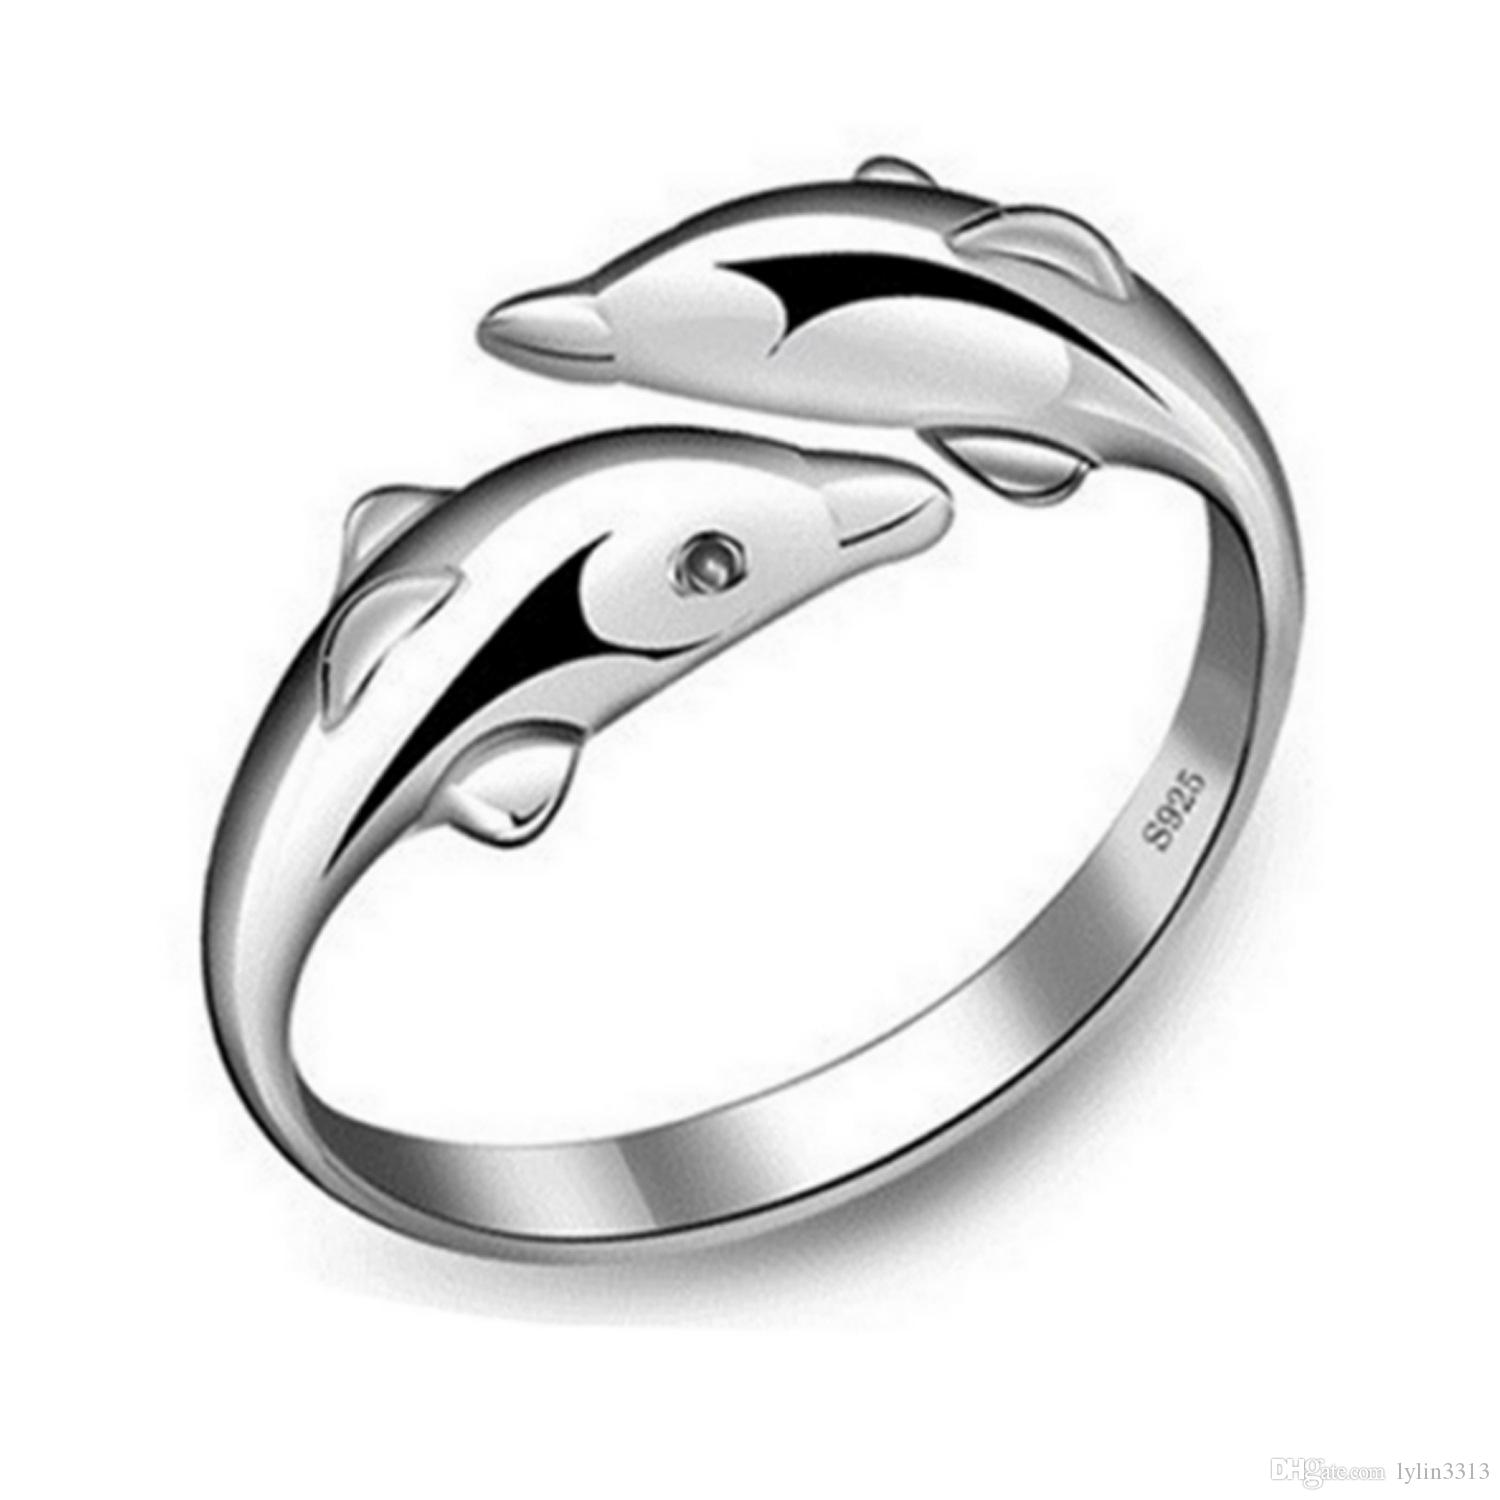 Metal New Factory Fashion Jewelry Opn Doliphin Finger Rings FOR GIRLS Lovely Alloy Ring Prom Giftn